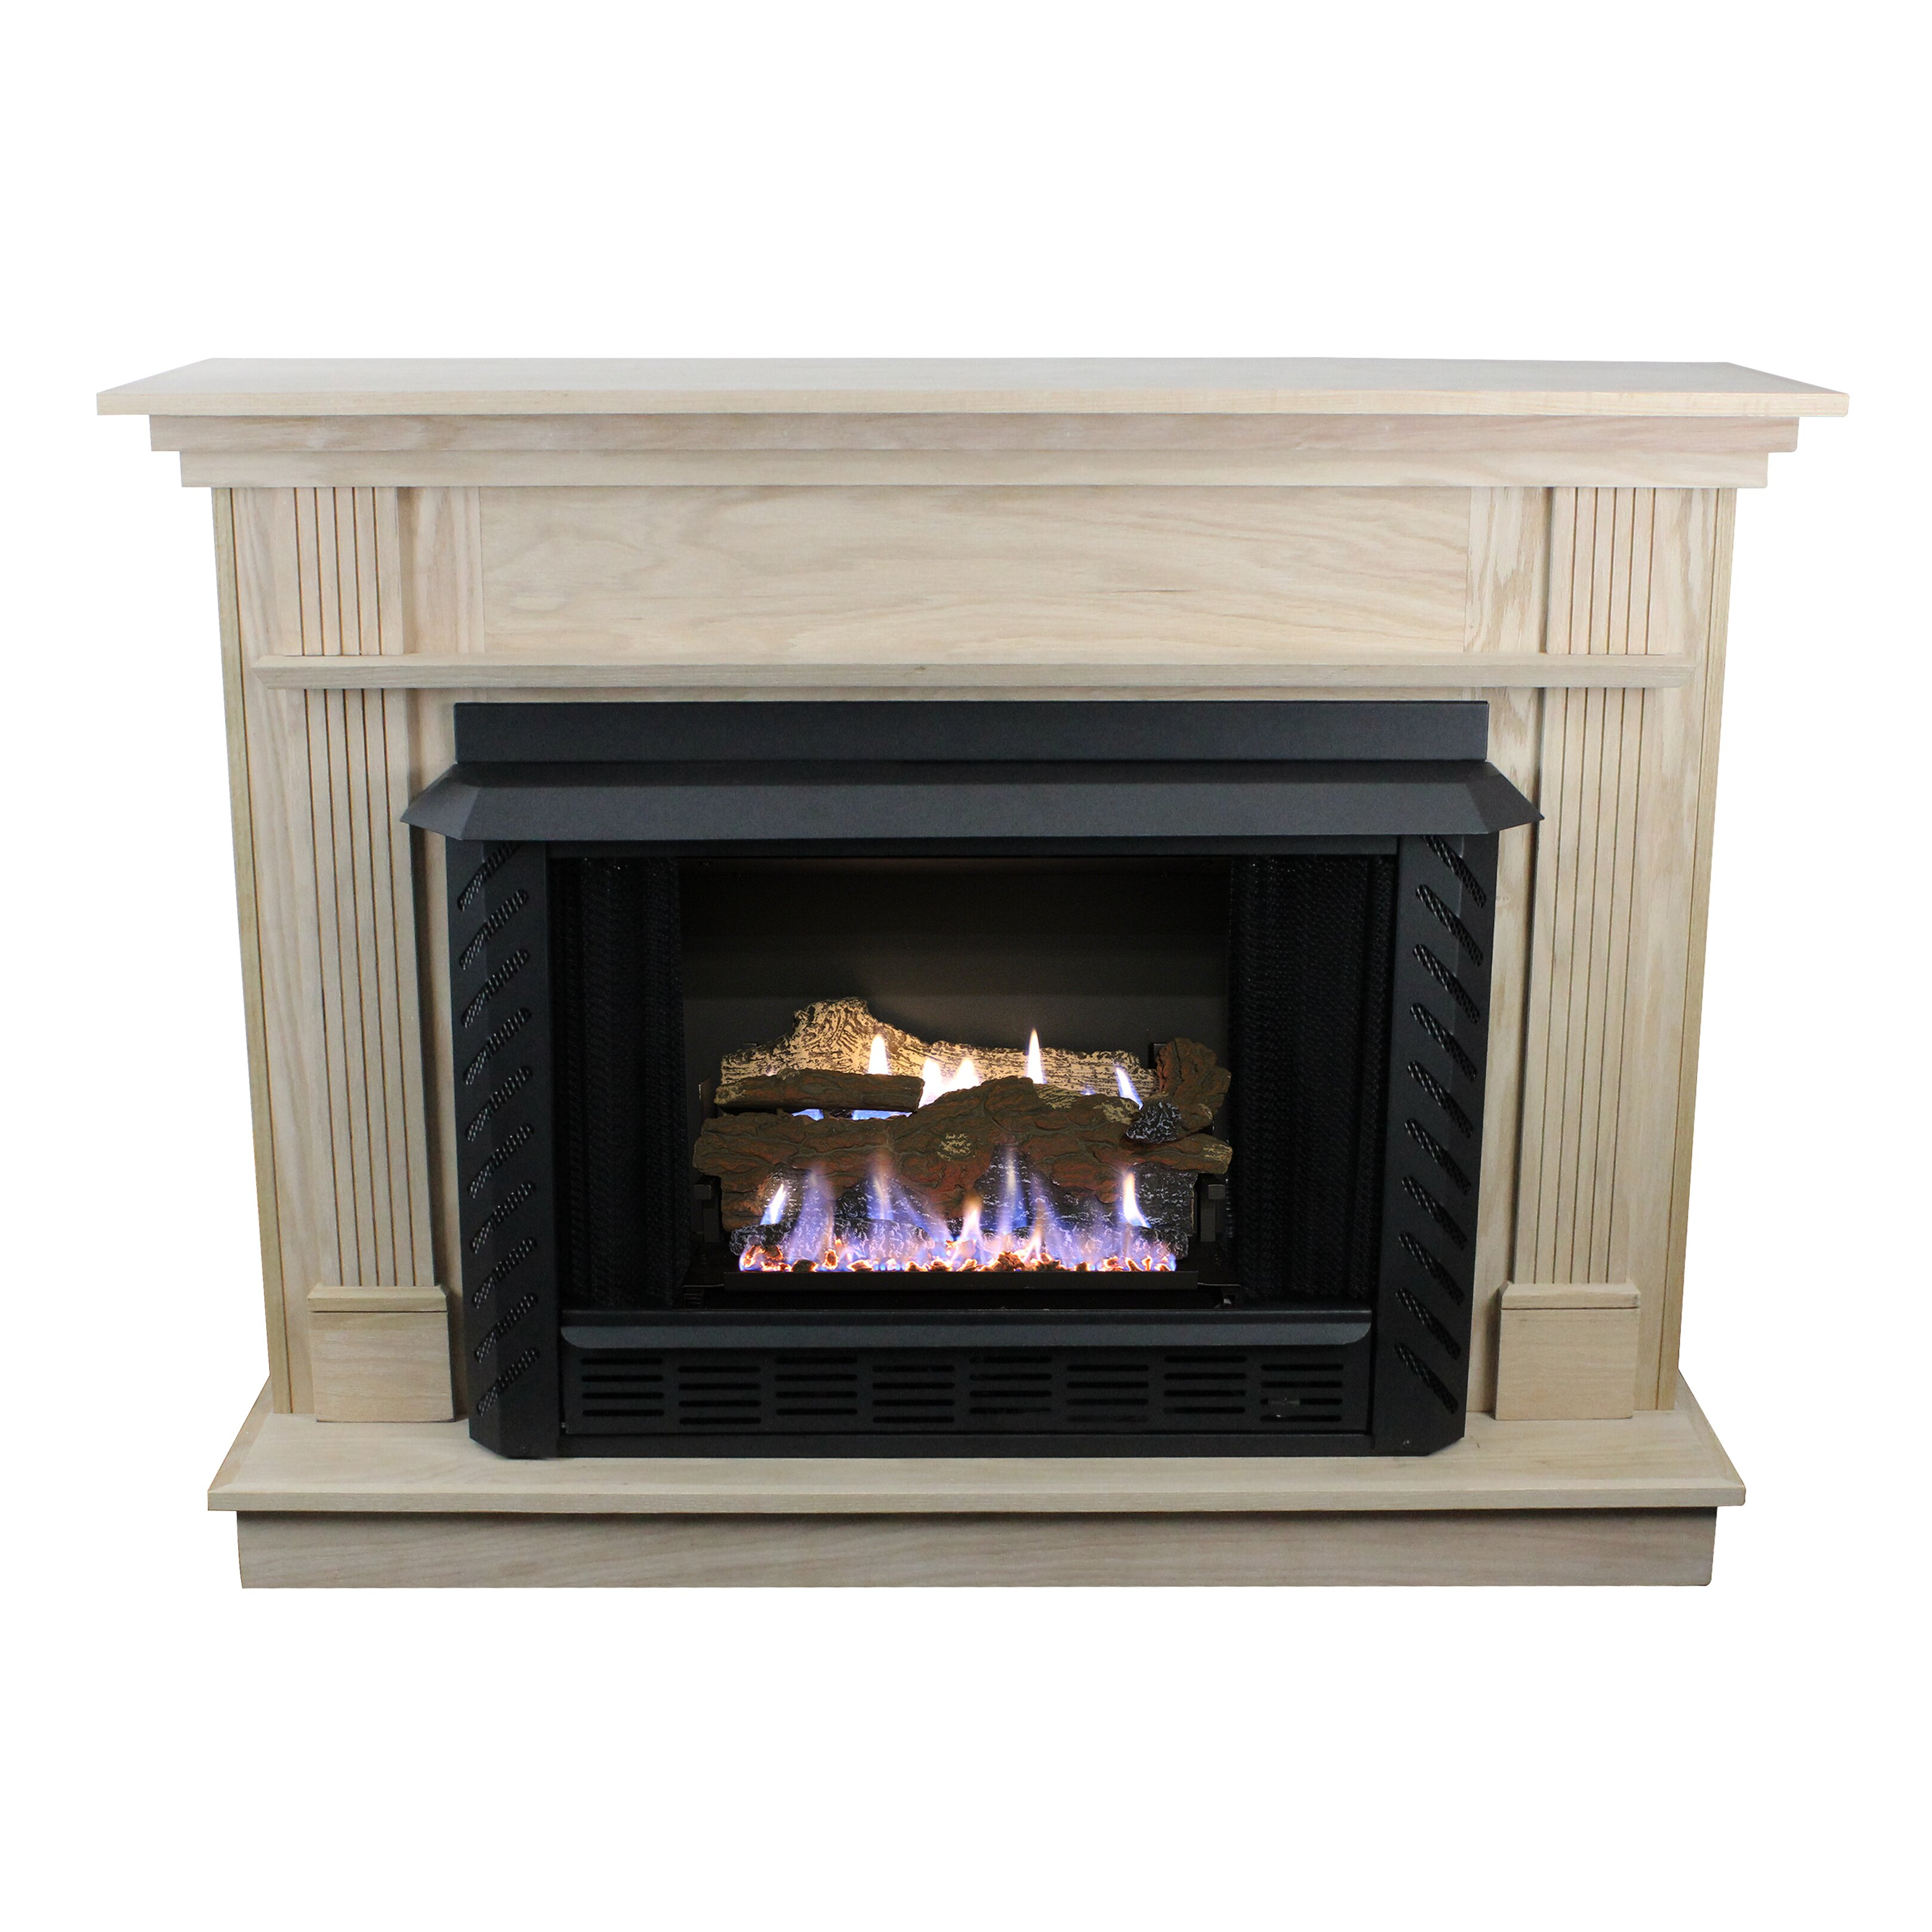 Vent free natural gas fireplace for Natural gas heating options